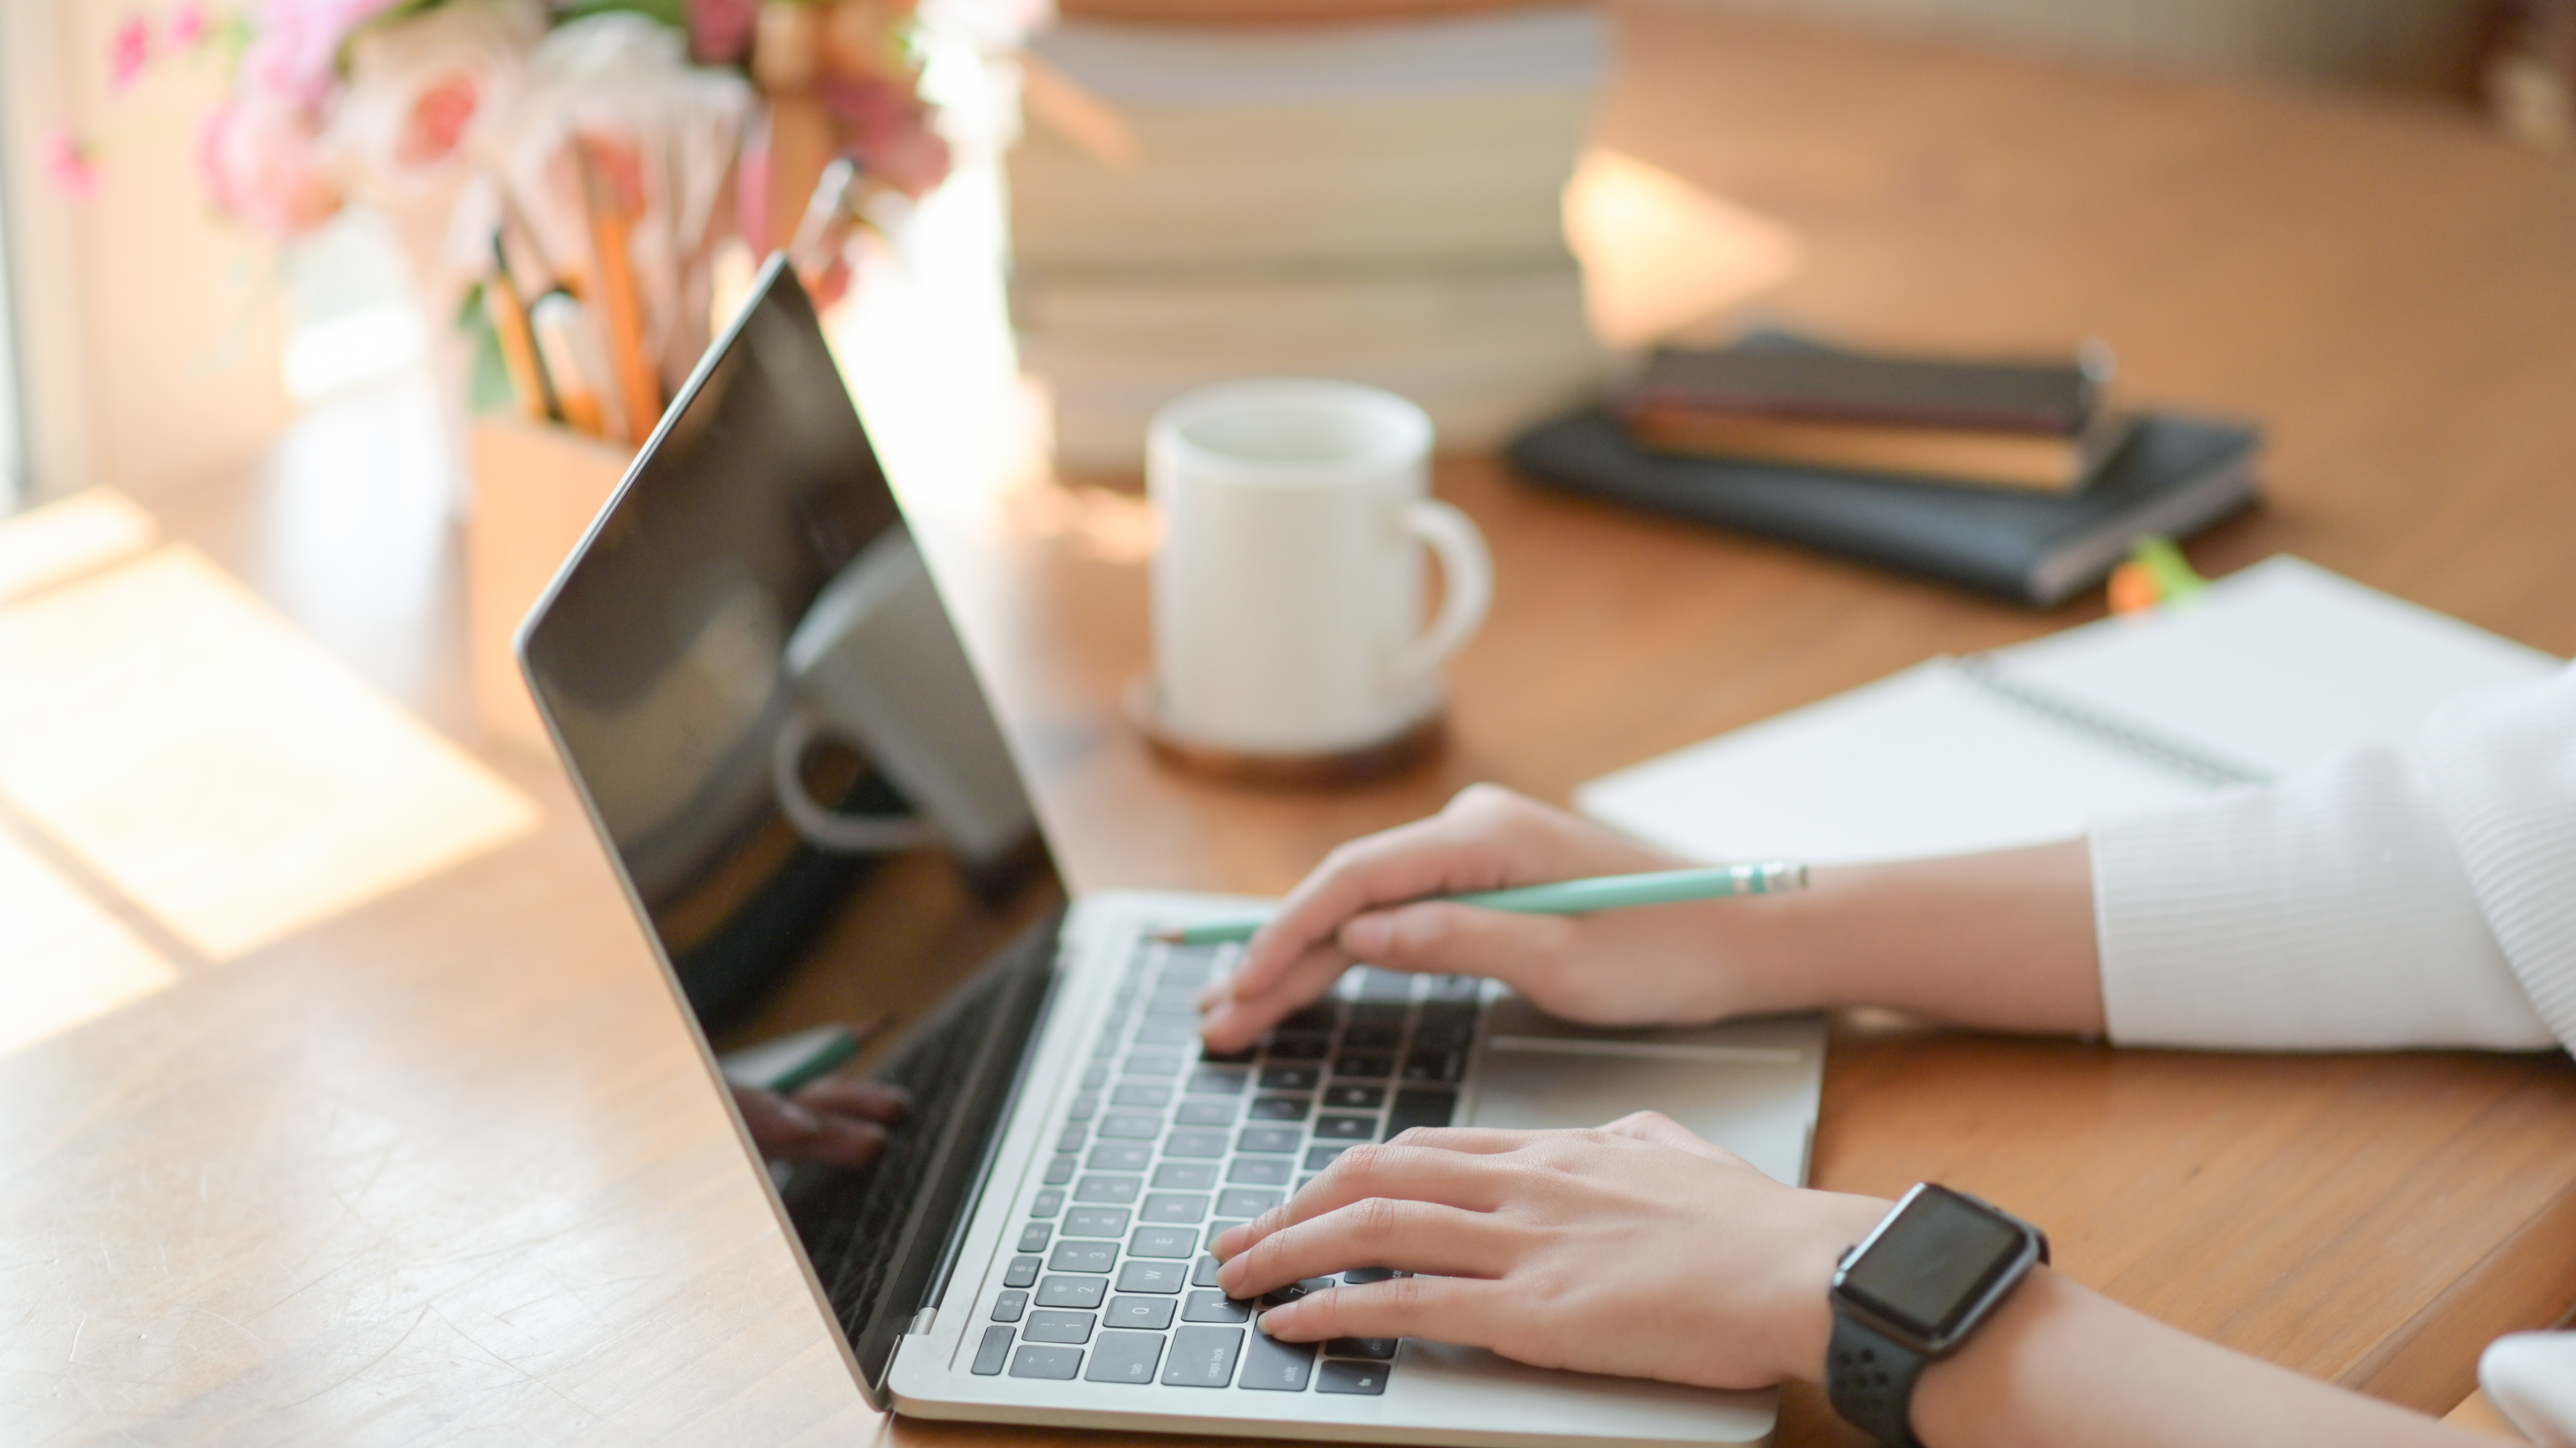 close-up-young-girl-hand-is-using-laptop-on-a-wood-R7FJDS2